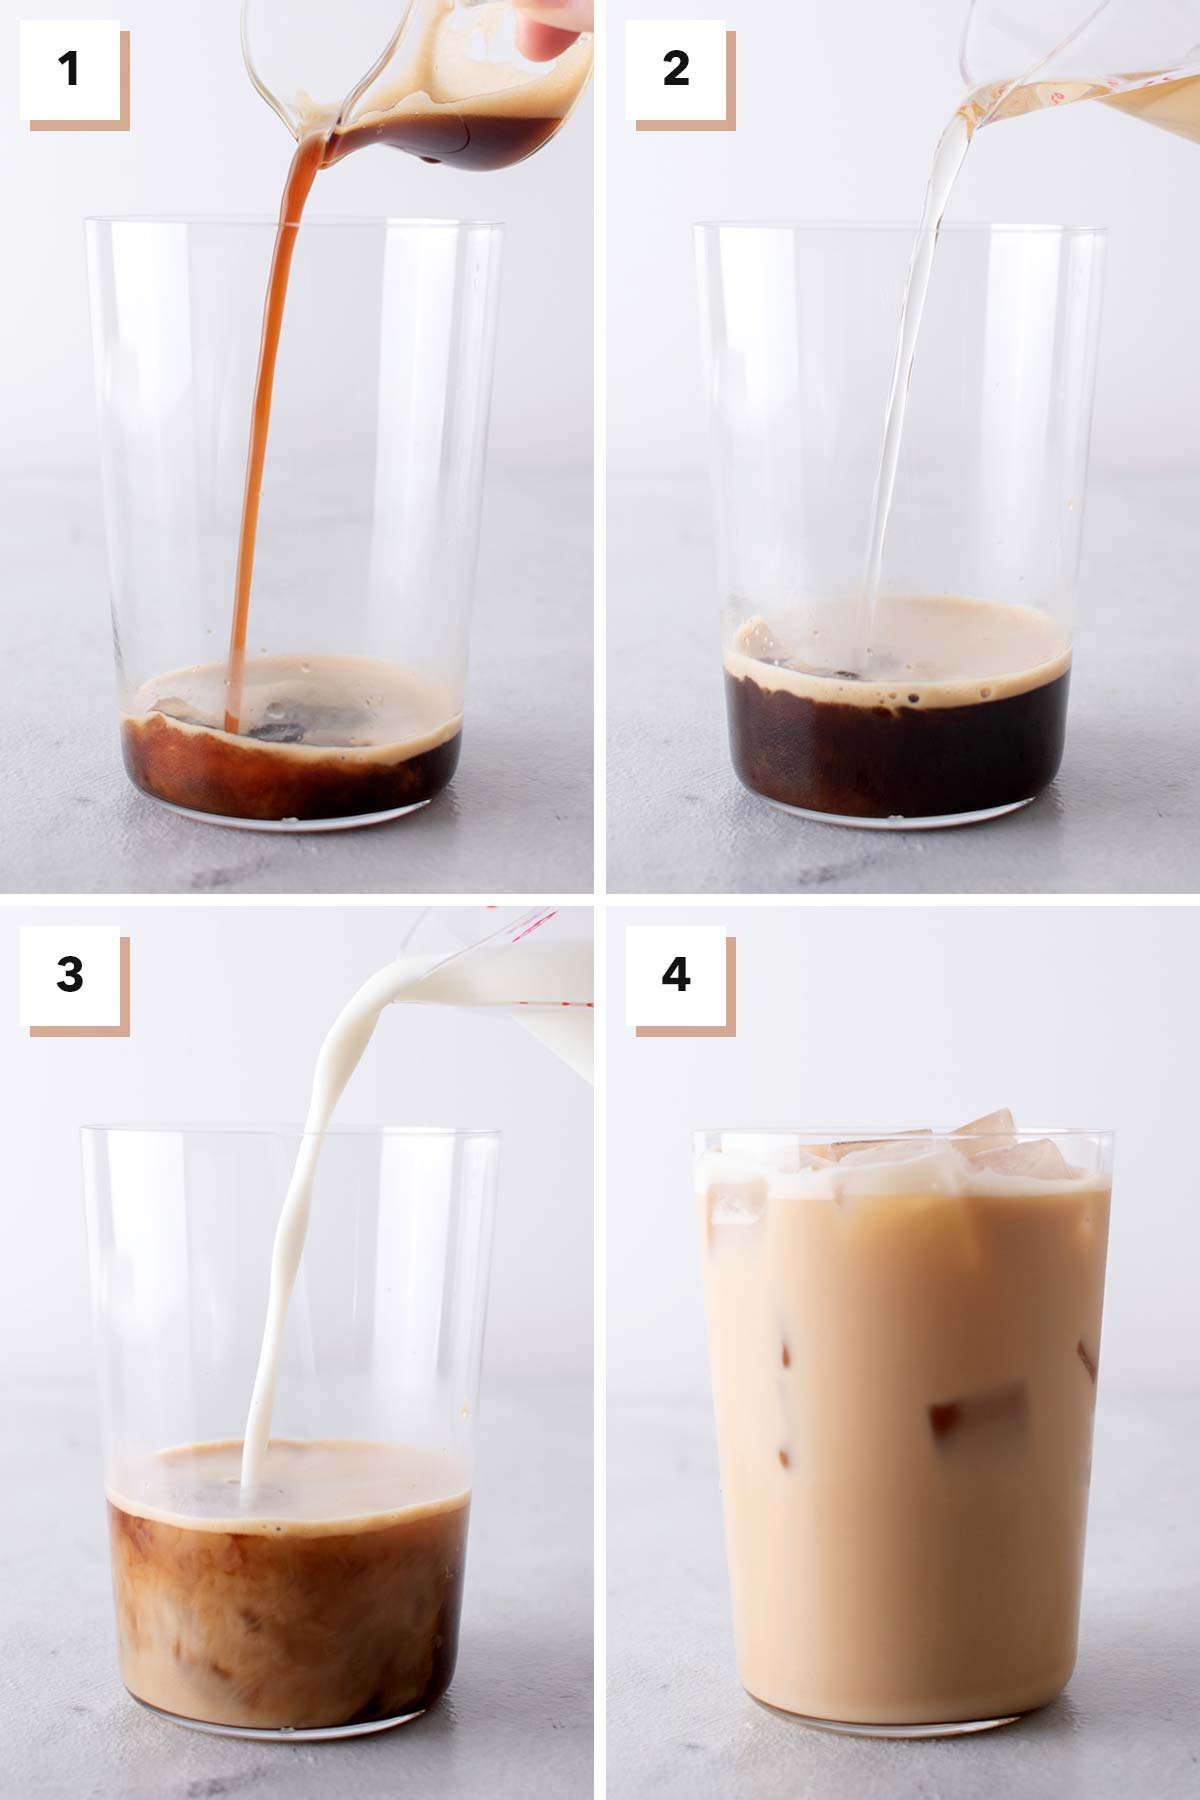 Four photo collage showing steps to make an Iced Vanilla Latte.